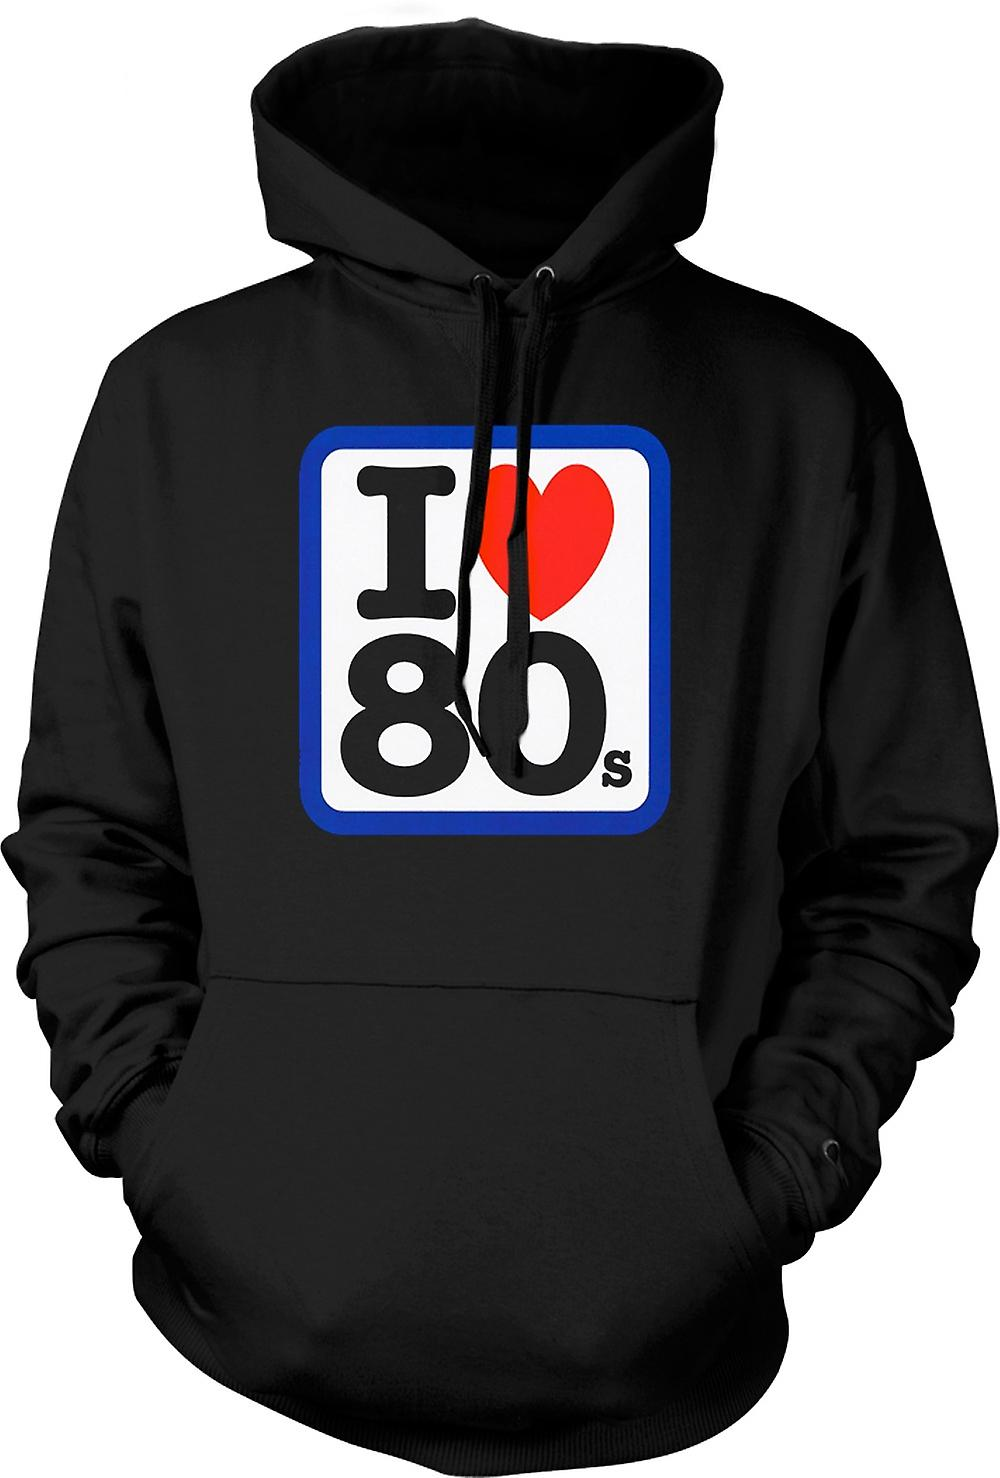 Mens Hoodie - I Love Heart The 80s - Funny